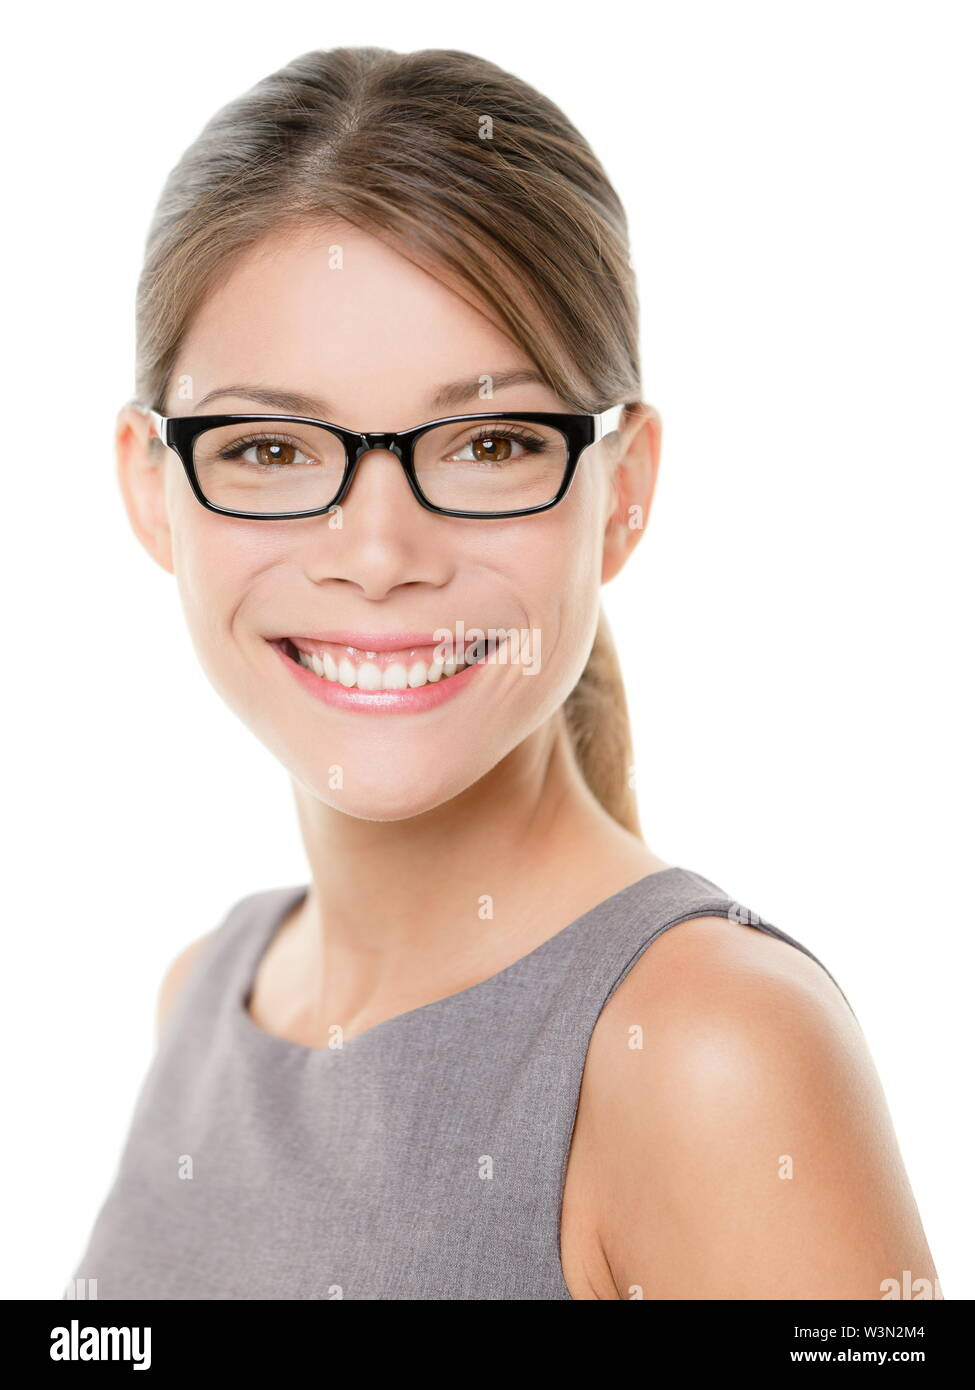 Glasses eyewear spectacles woman happy looking at camera with big smile. Close up portrait of female business woman model face isolated on white background. Mixed race Asian Caucasian businesswoman. - Stock Image